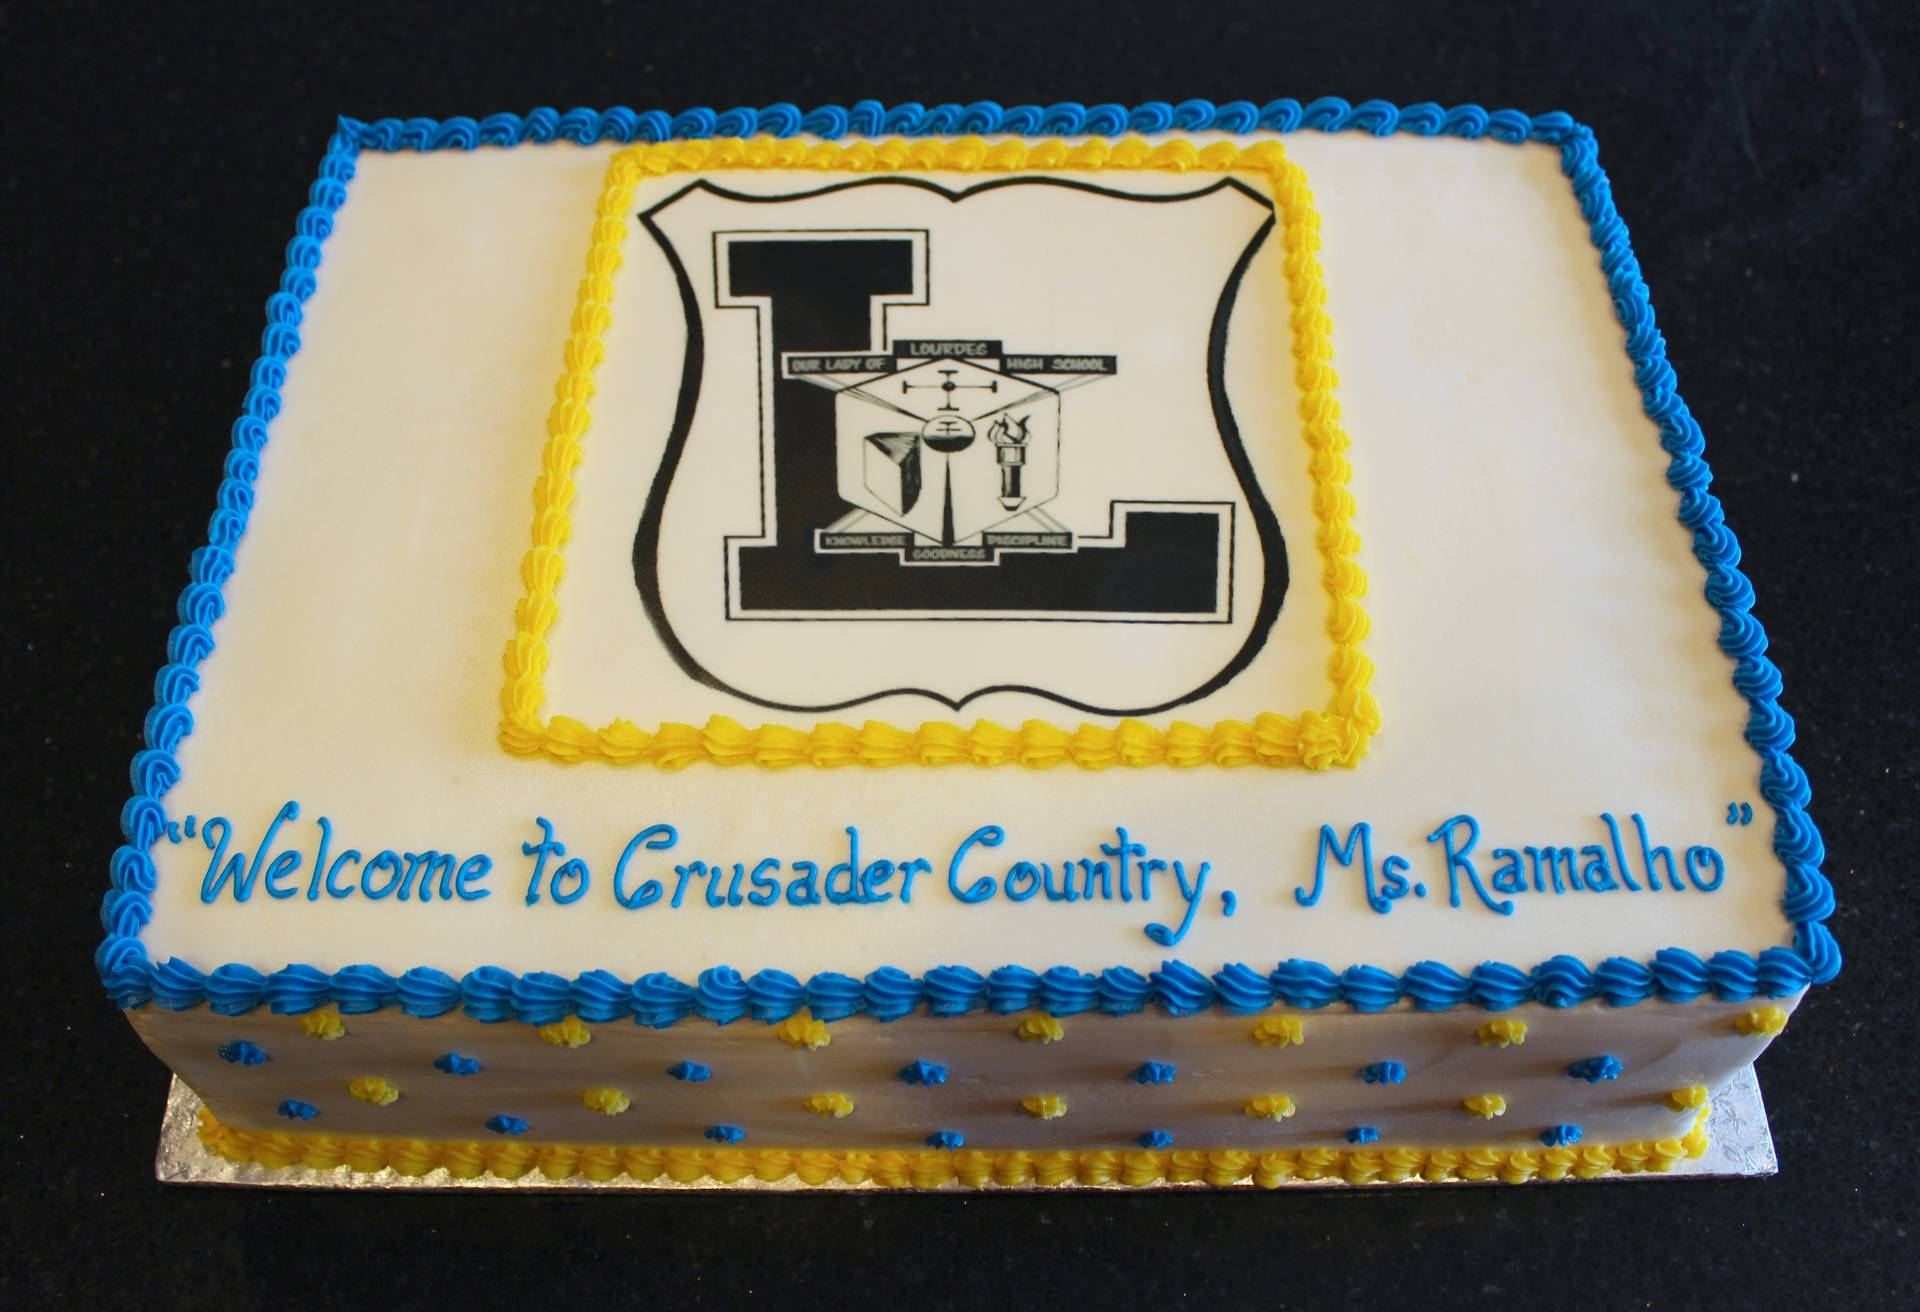 Our Lady of Lourdes Crusader Country Cake